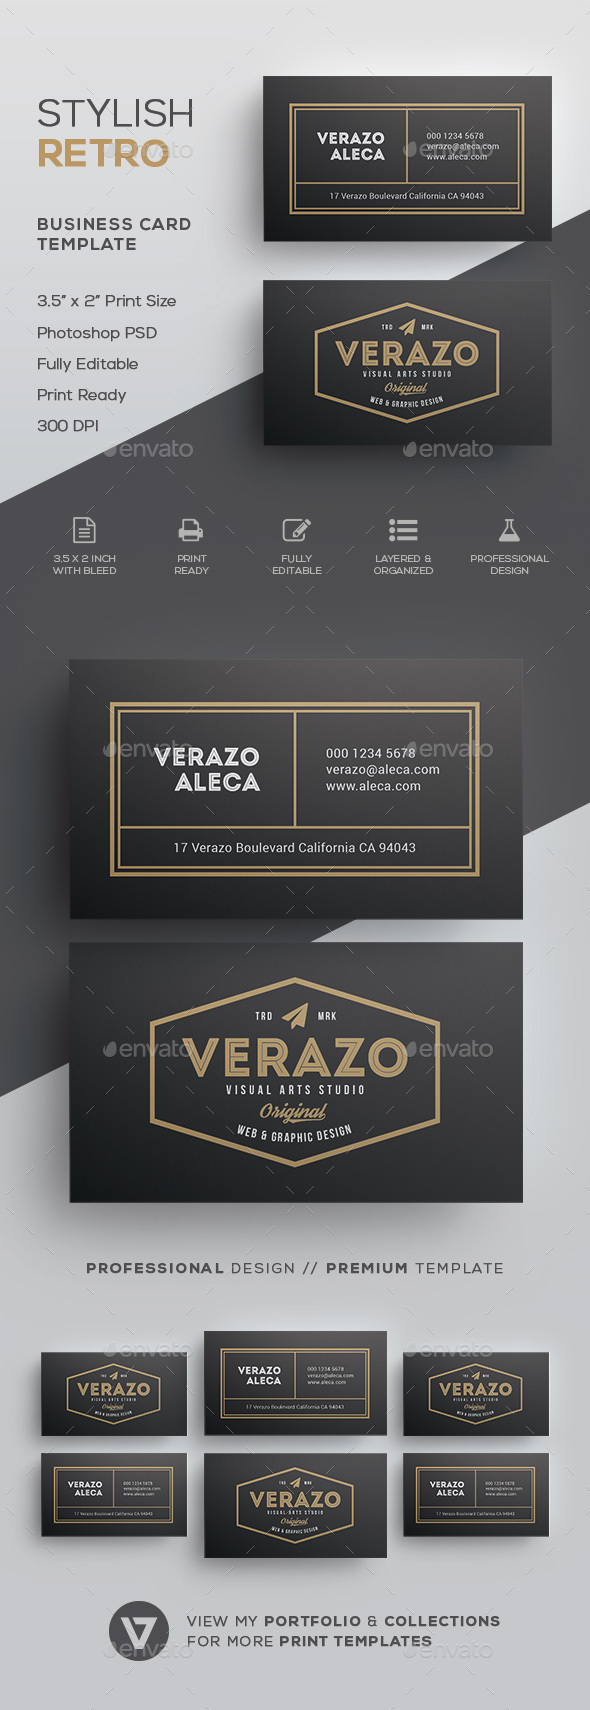 Vintage business card templates designs from graphicriver wajeb Images